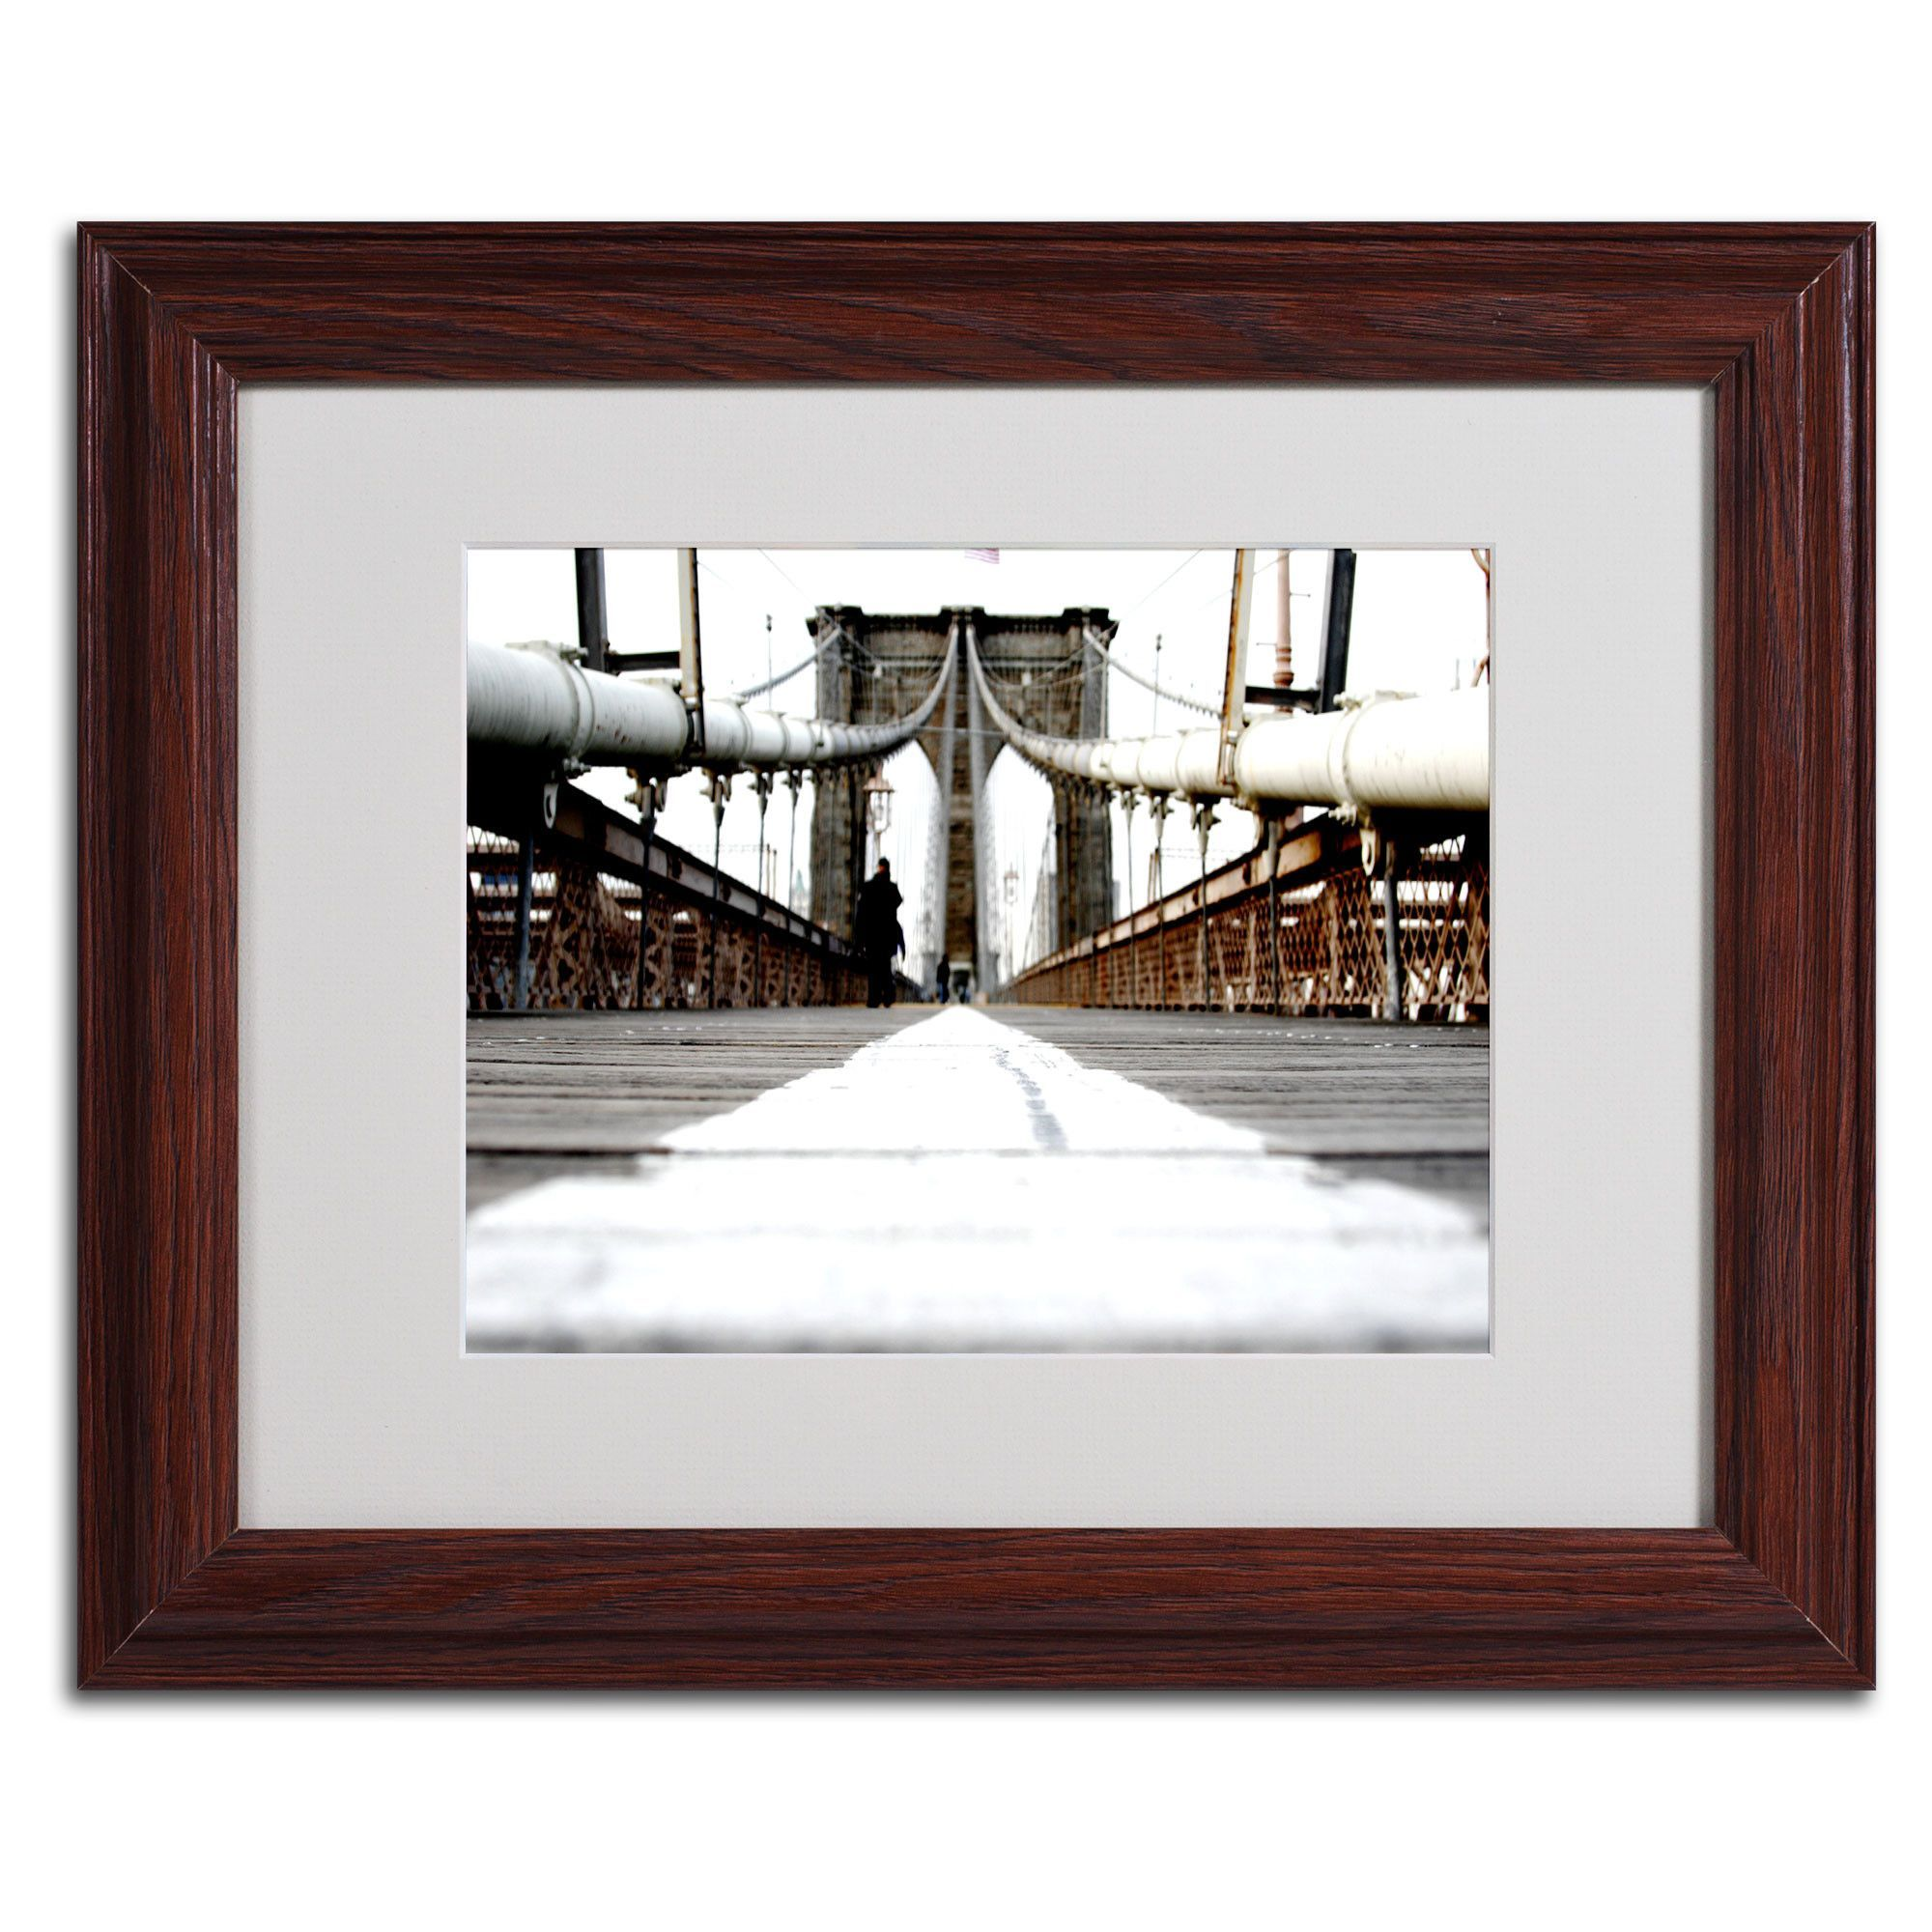 'Brooklyn Bridge' by Yale Gurney Matted Framed Photographic Print